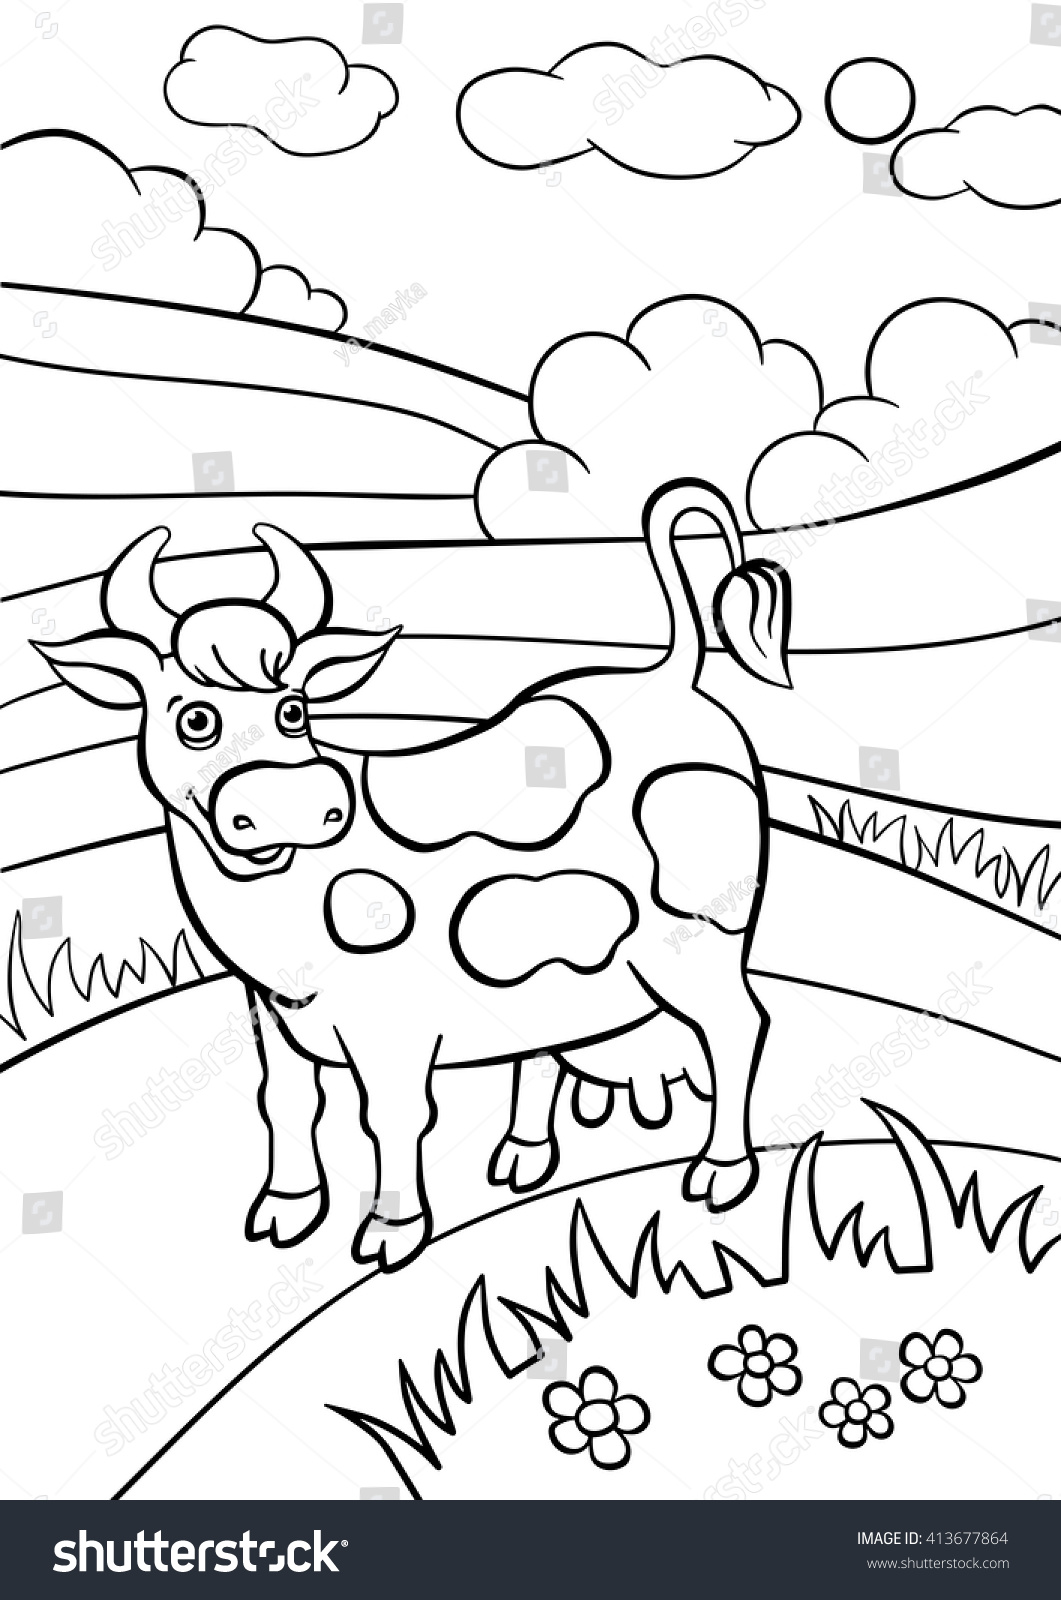 Coloring Pages Animals Cute Cow Stands Stock Vector (2018) 413677864 ...